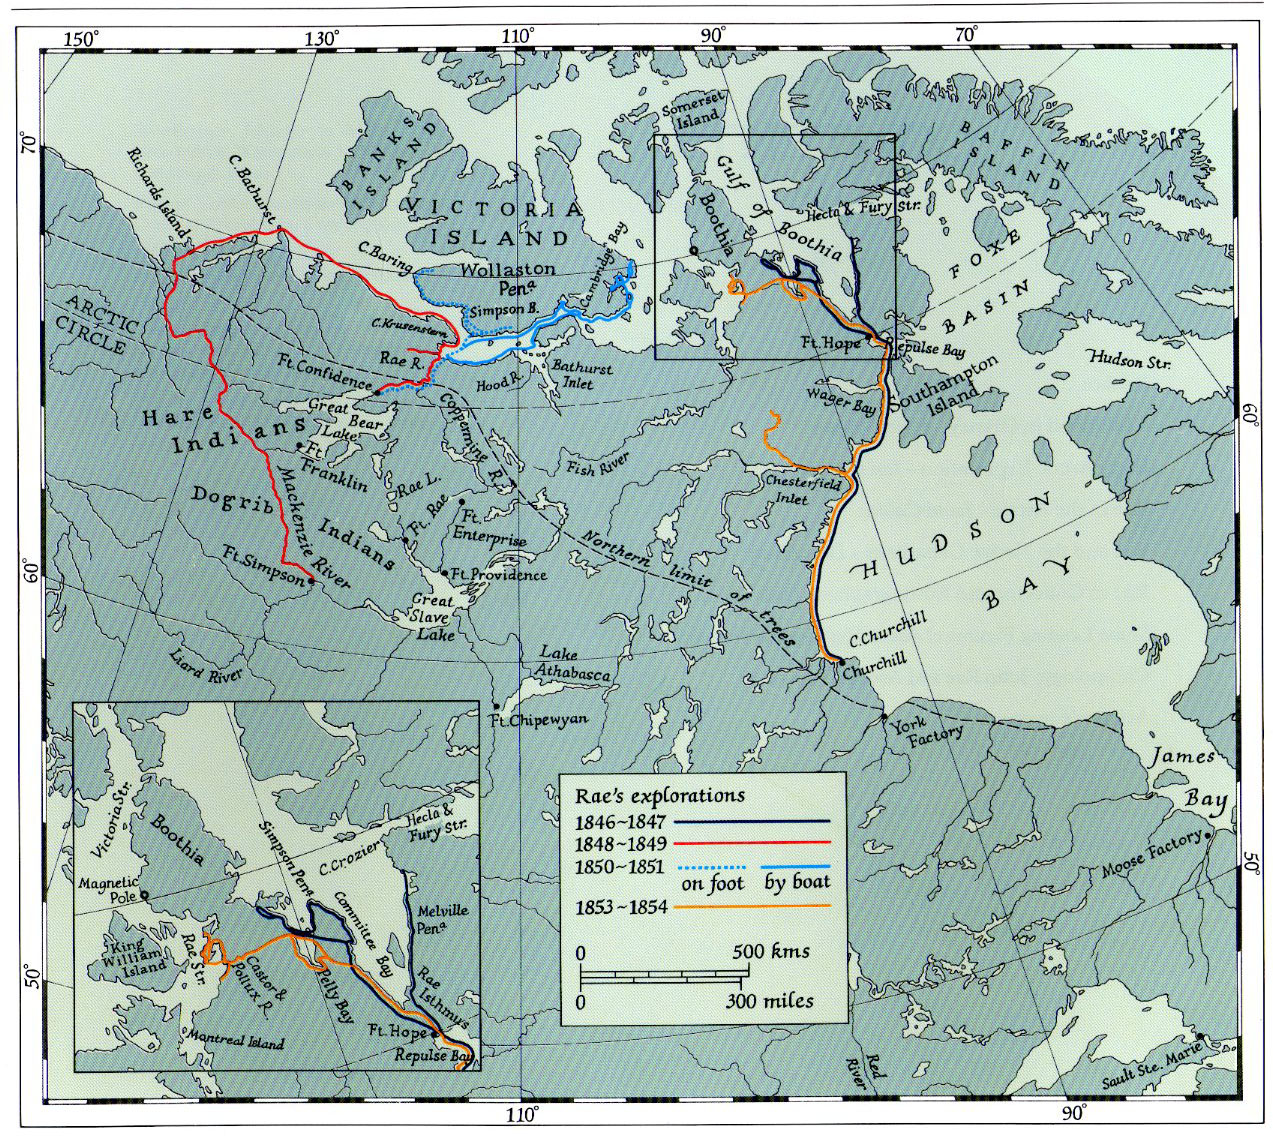 Map of Rae's Arctic expeditions by foot and boat